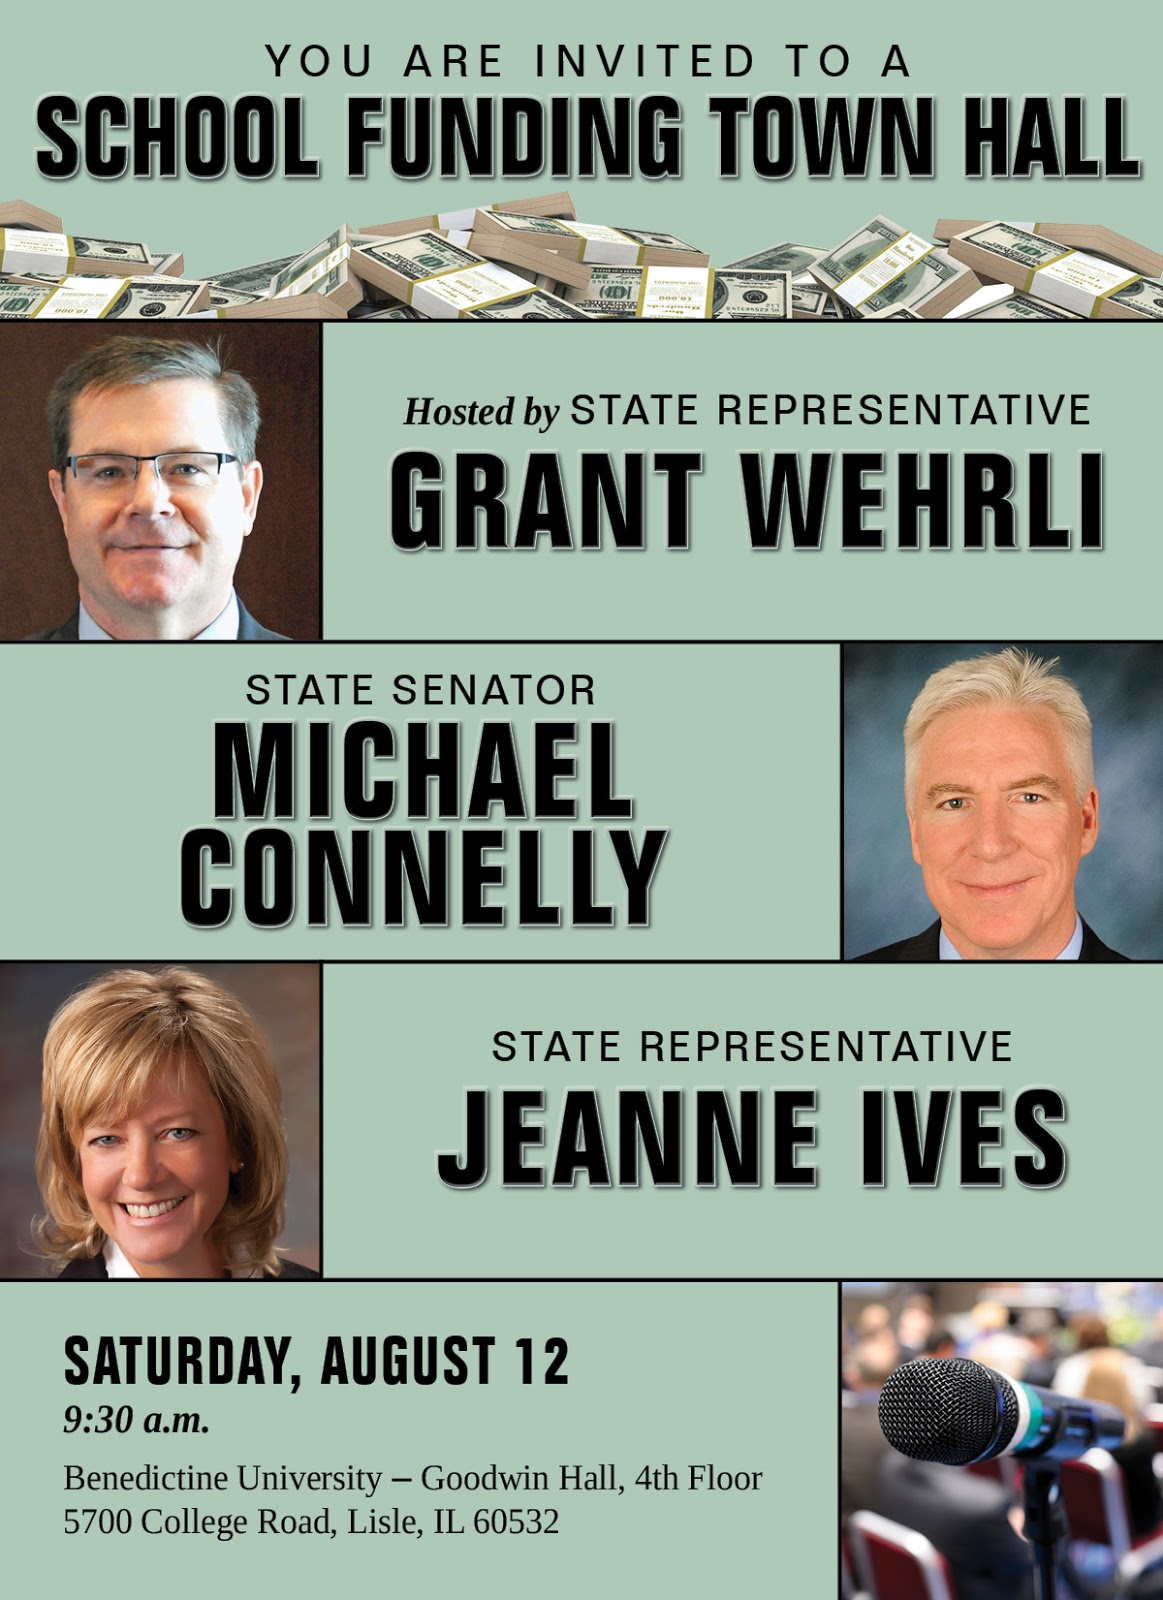 wehrli r naperville and jeanne ives r wheaton along with state senator michael connelly r naperville will host a town hall meeting on the status